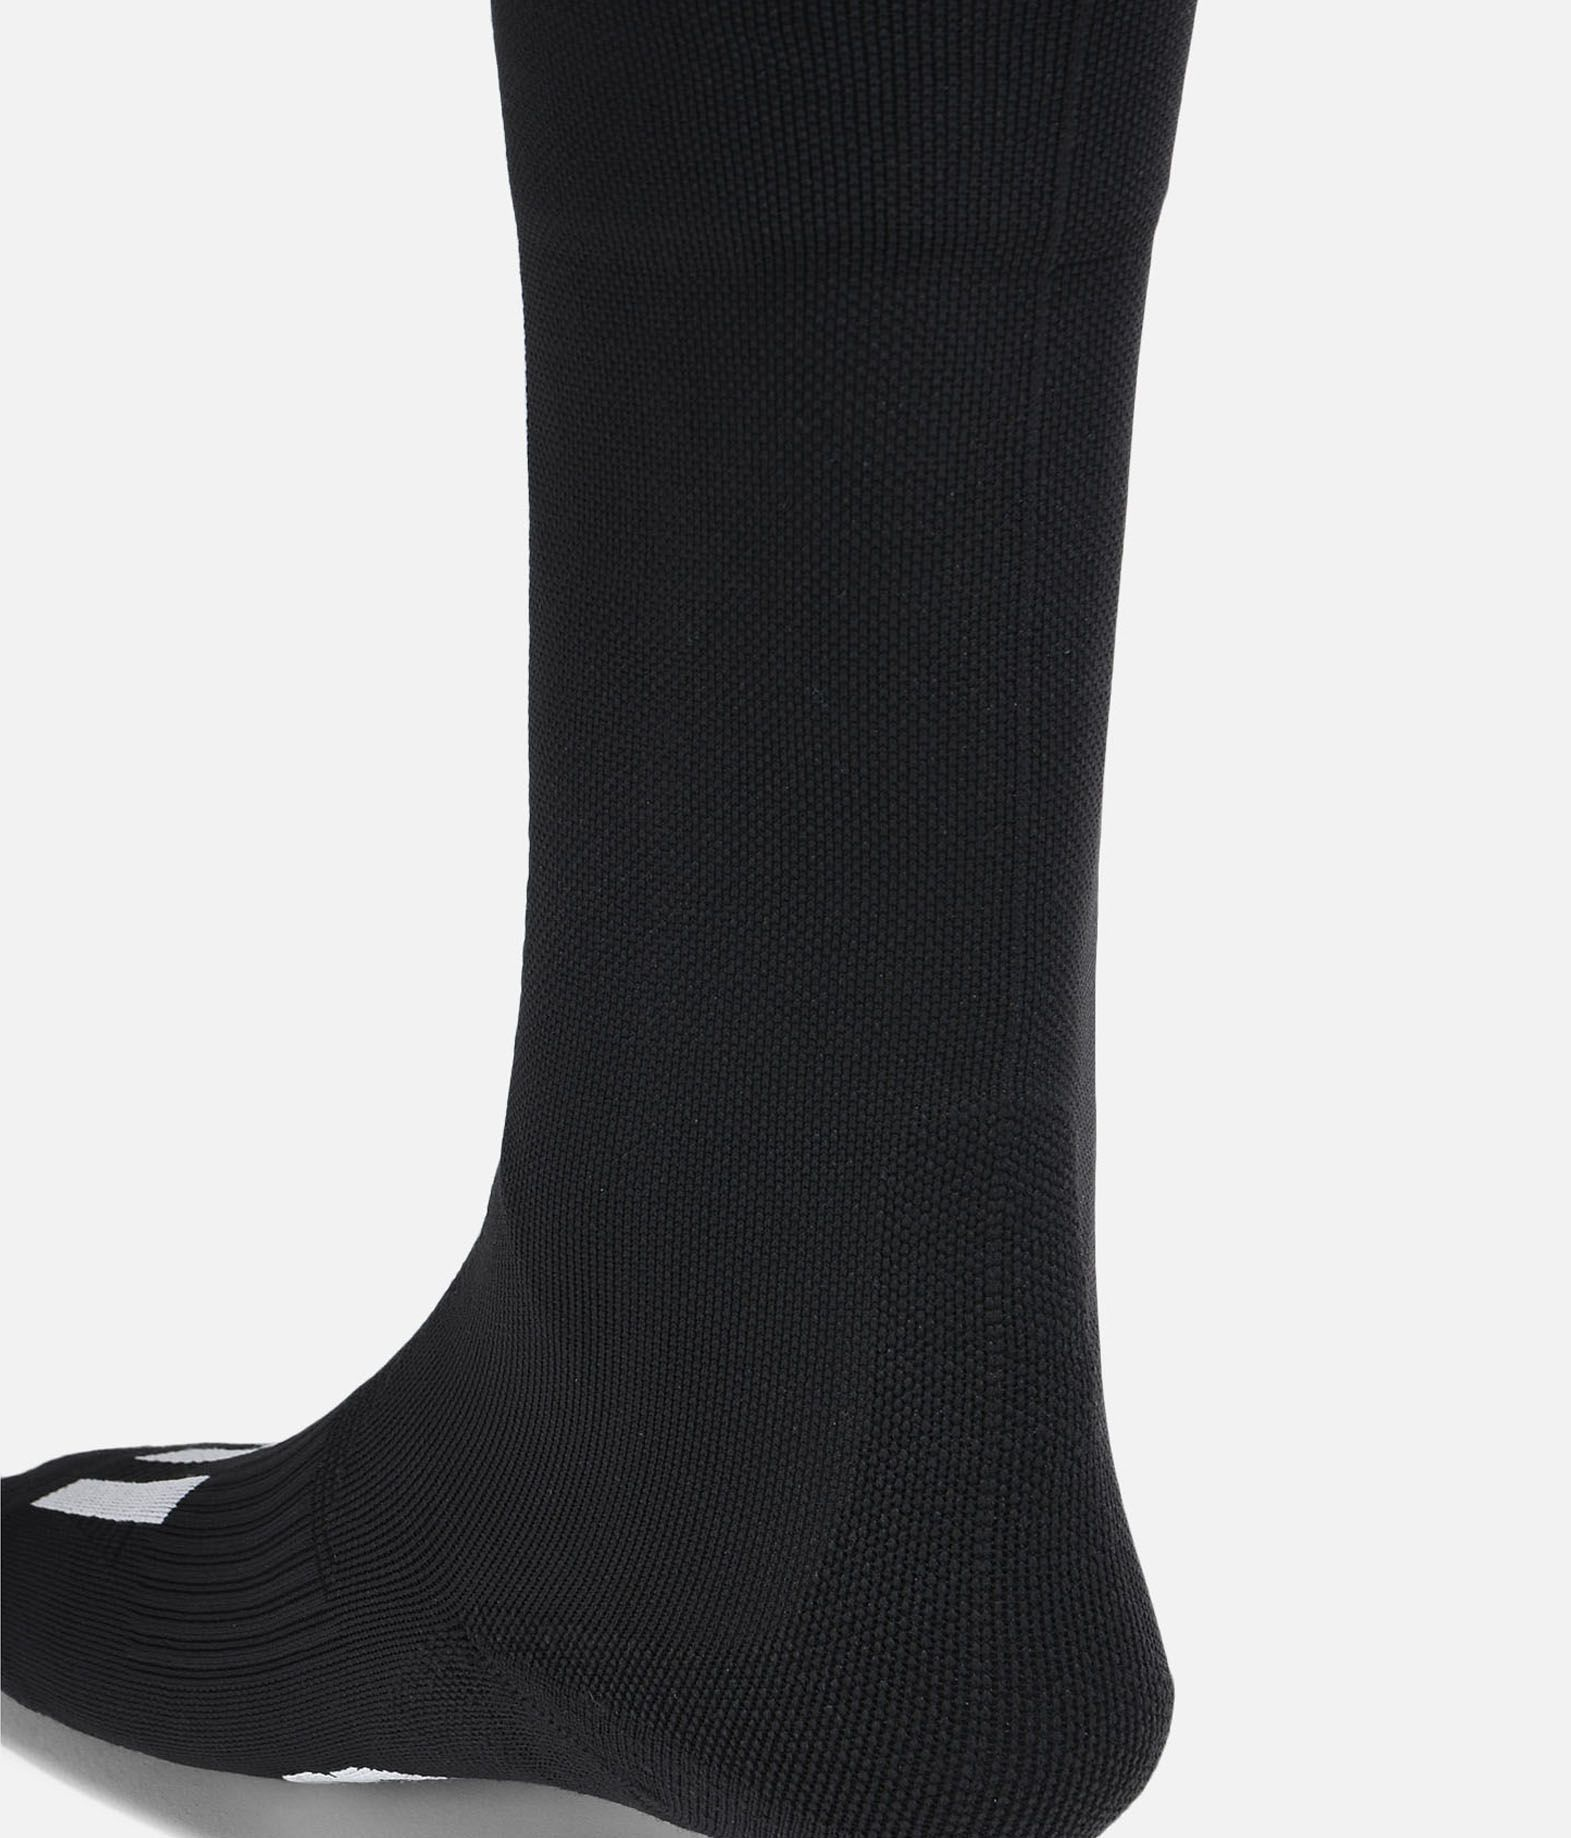 Y-3 Y-3 Tech Socks Socks E d